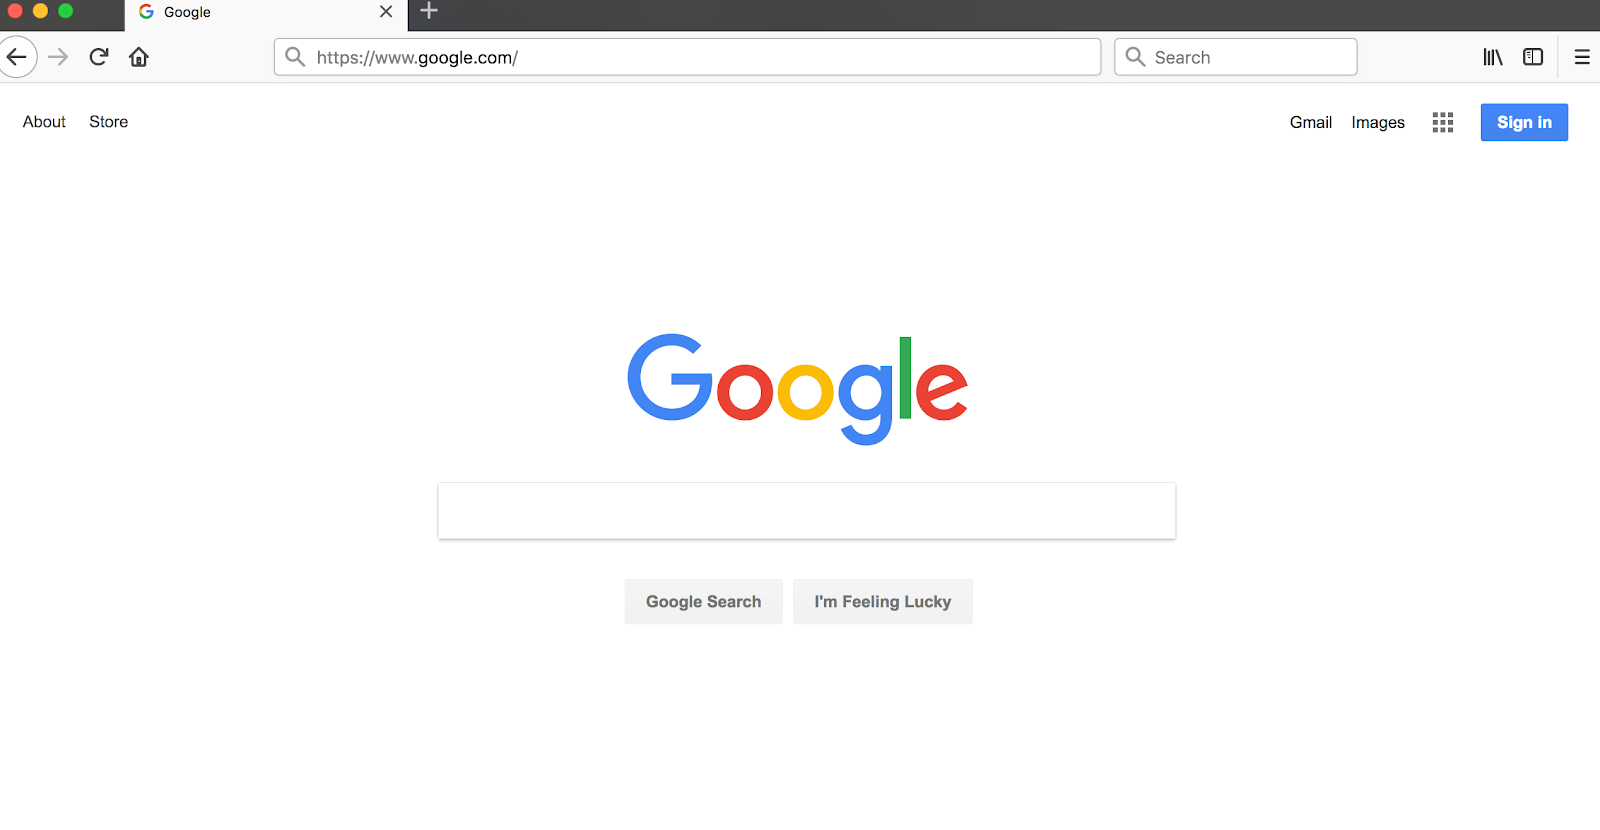 How to make Google the page